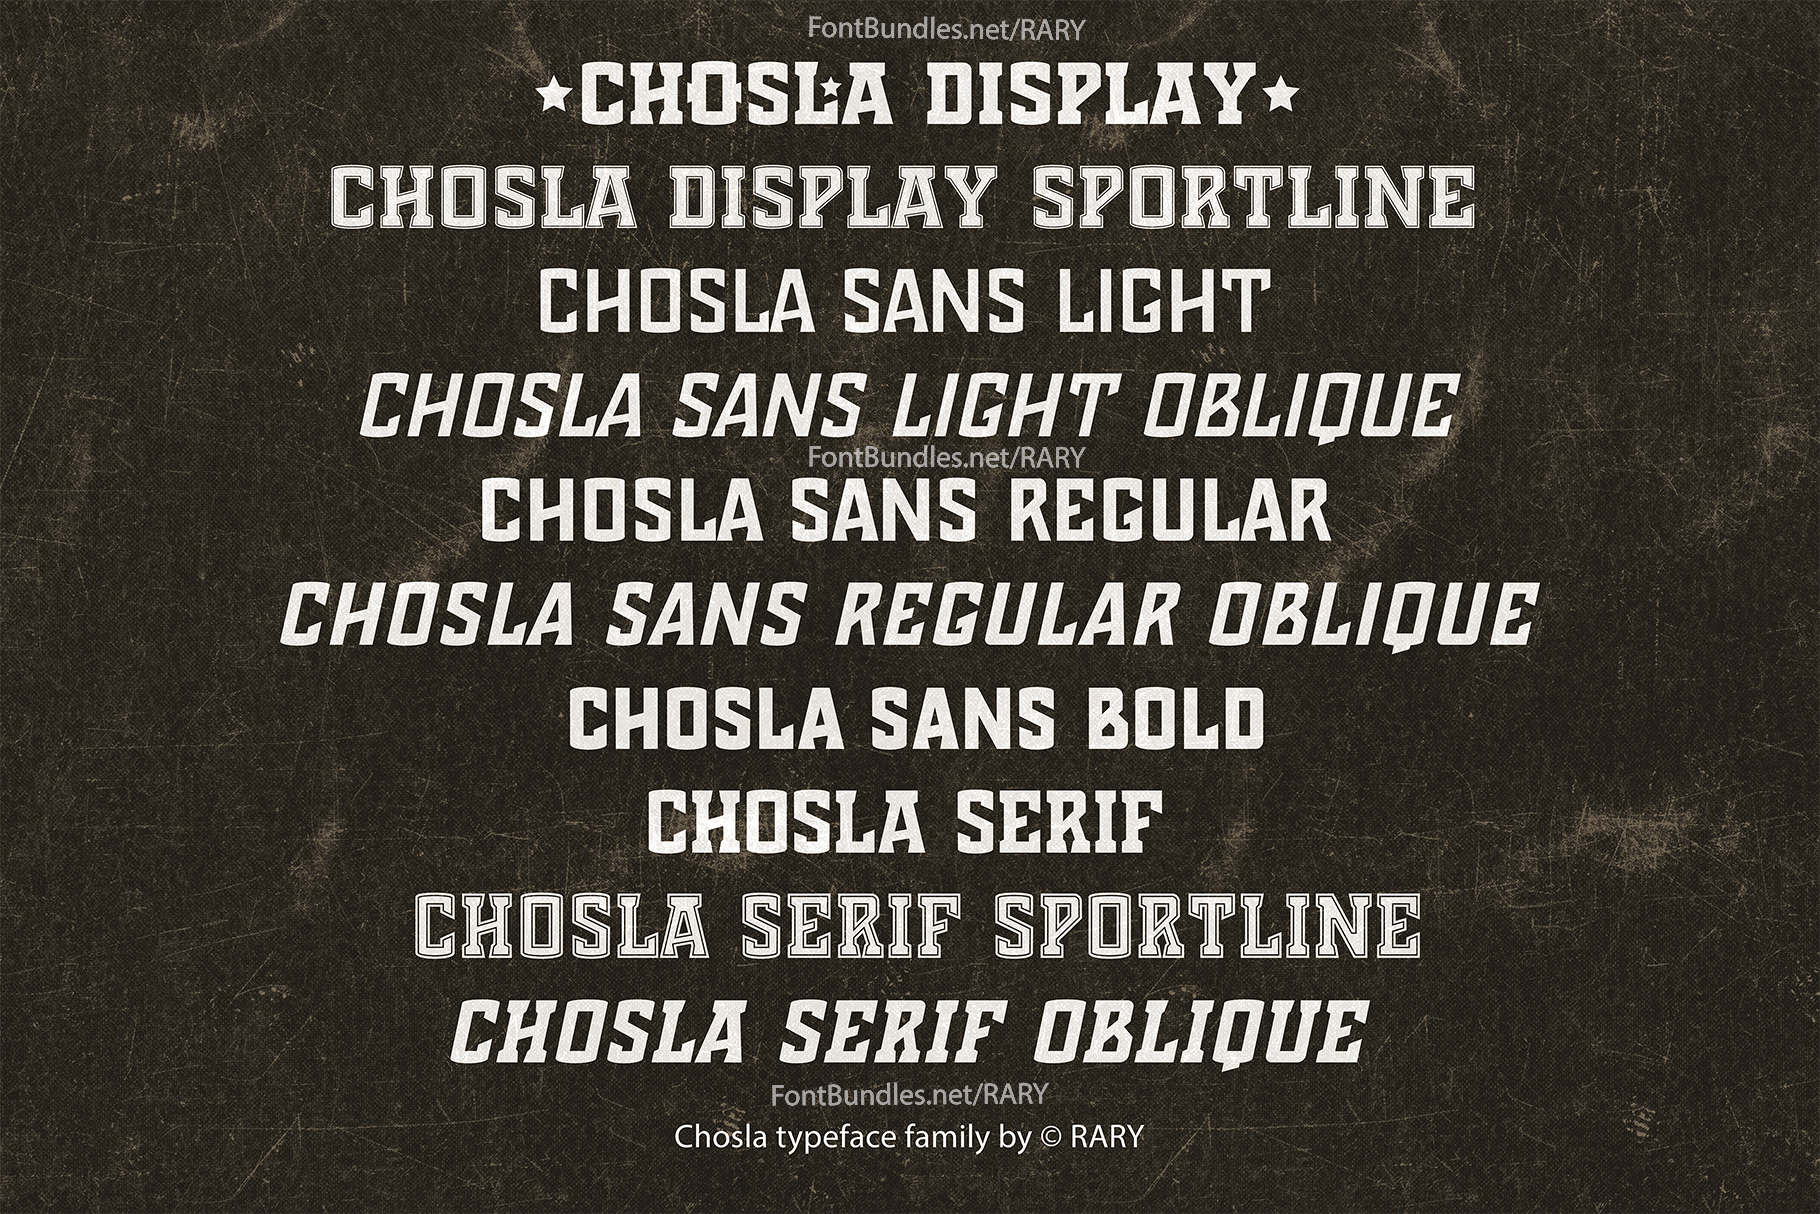 Chosla | Sports font family bundle. example image 10